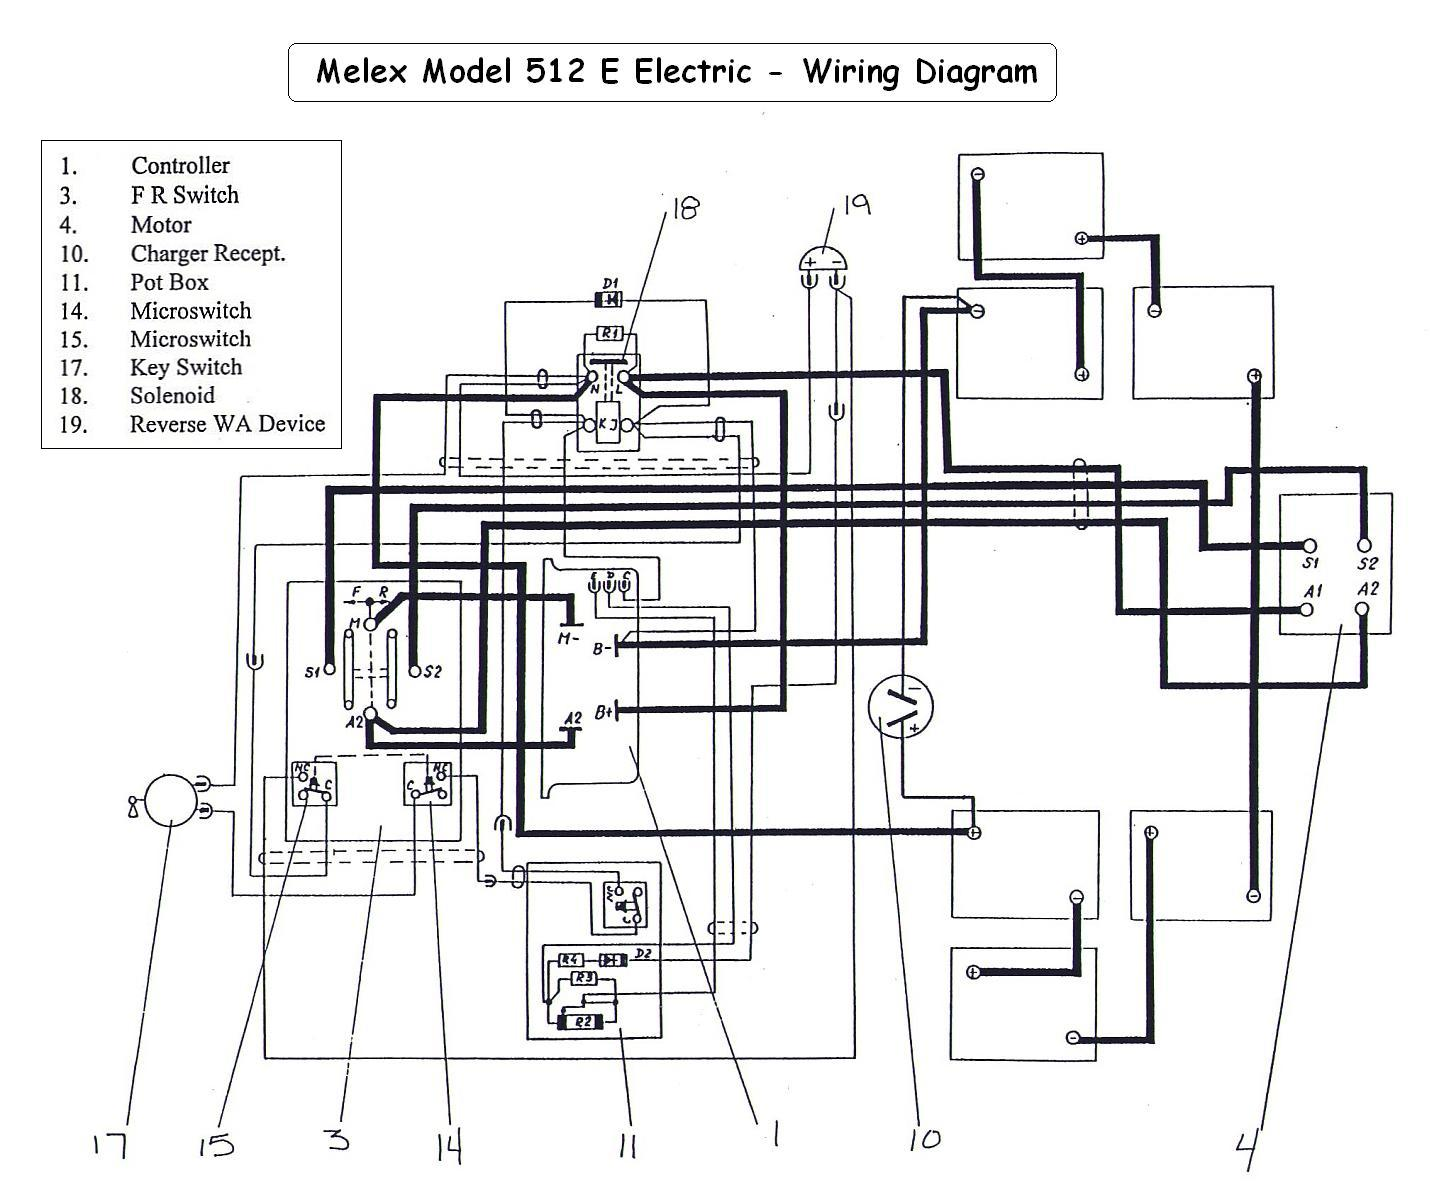 2012 elantra electrical wiring diagram